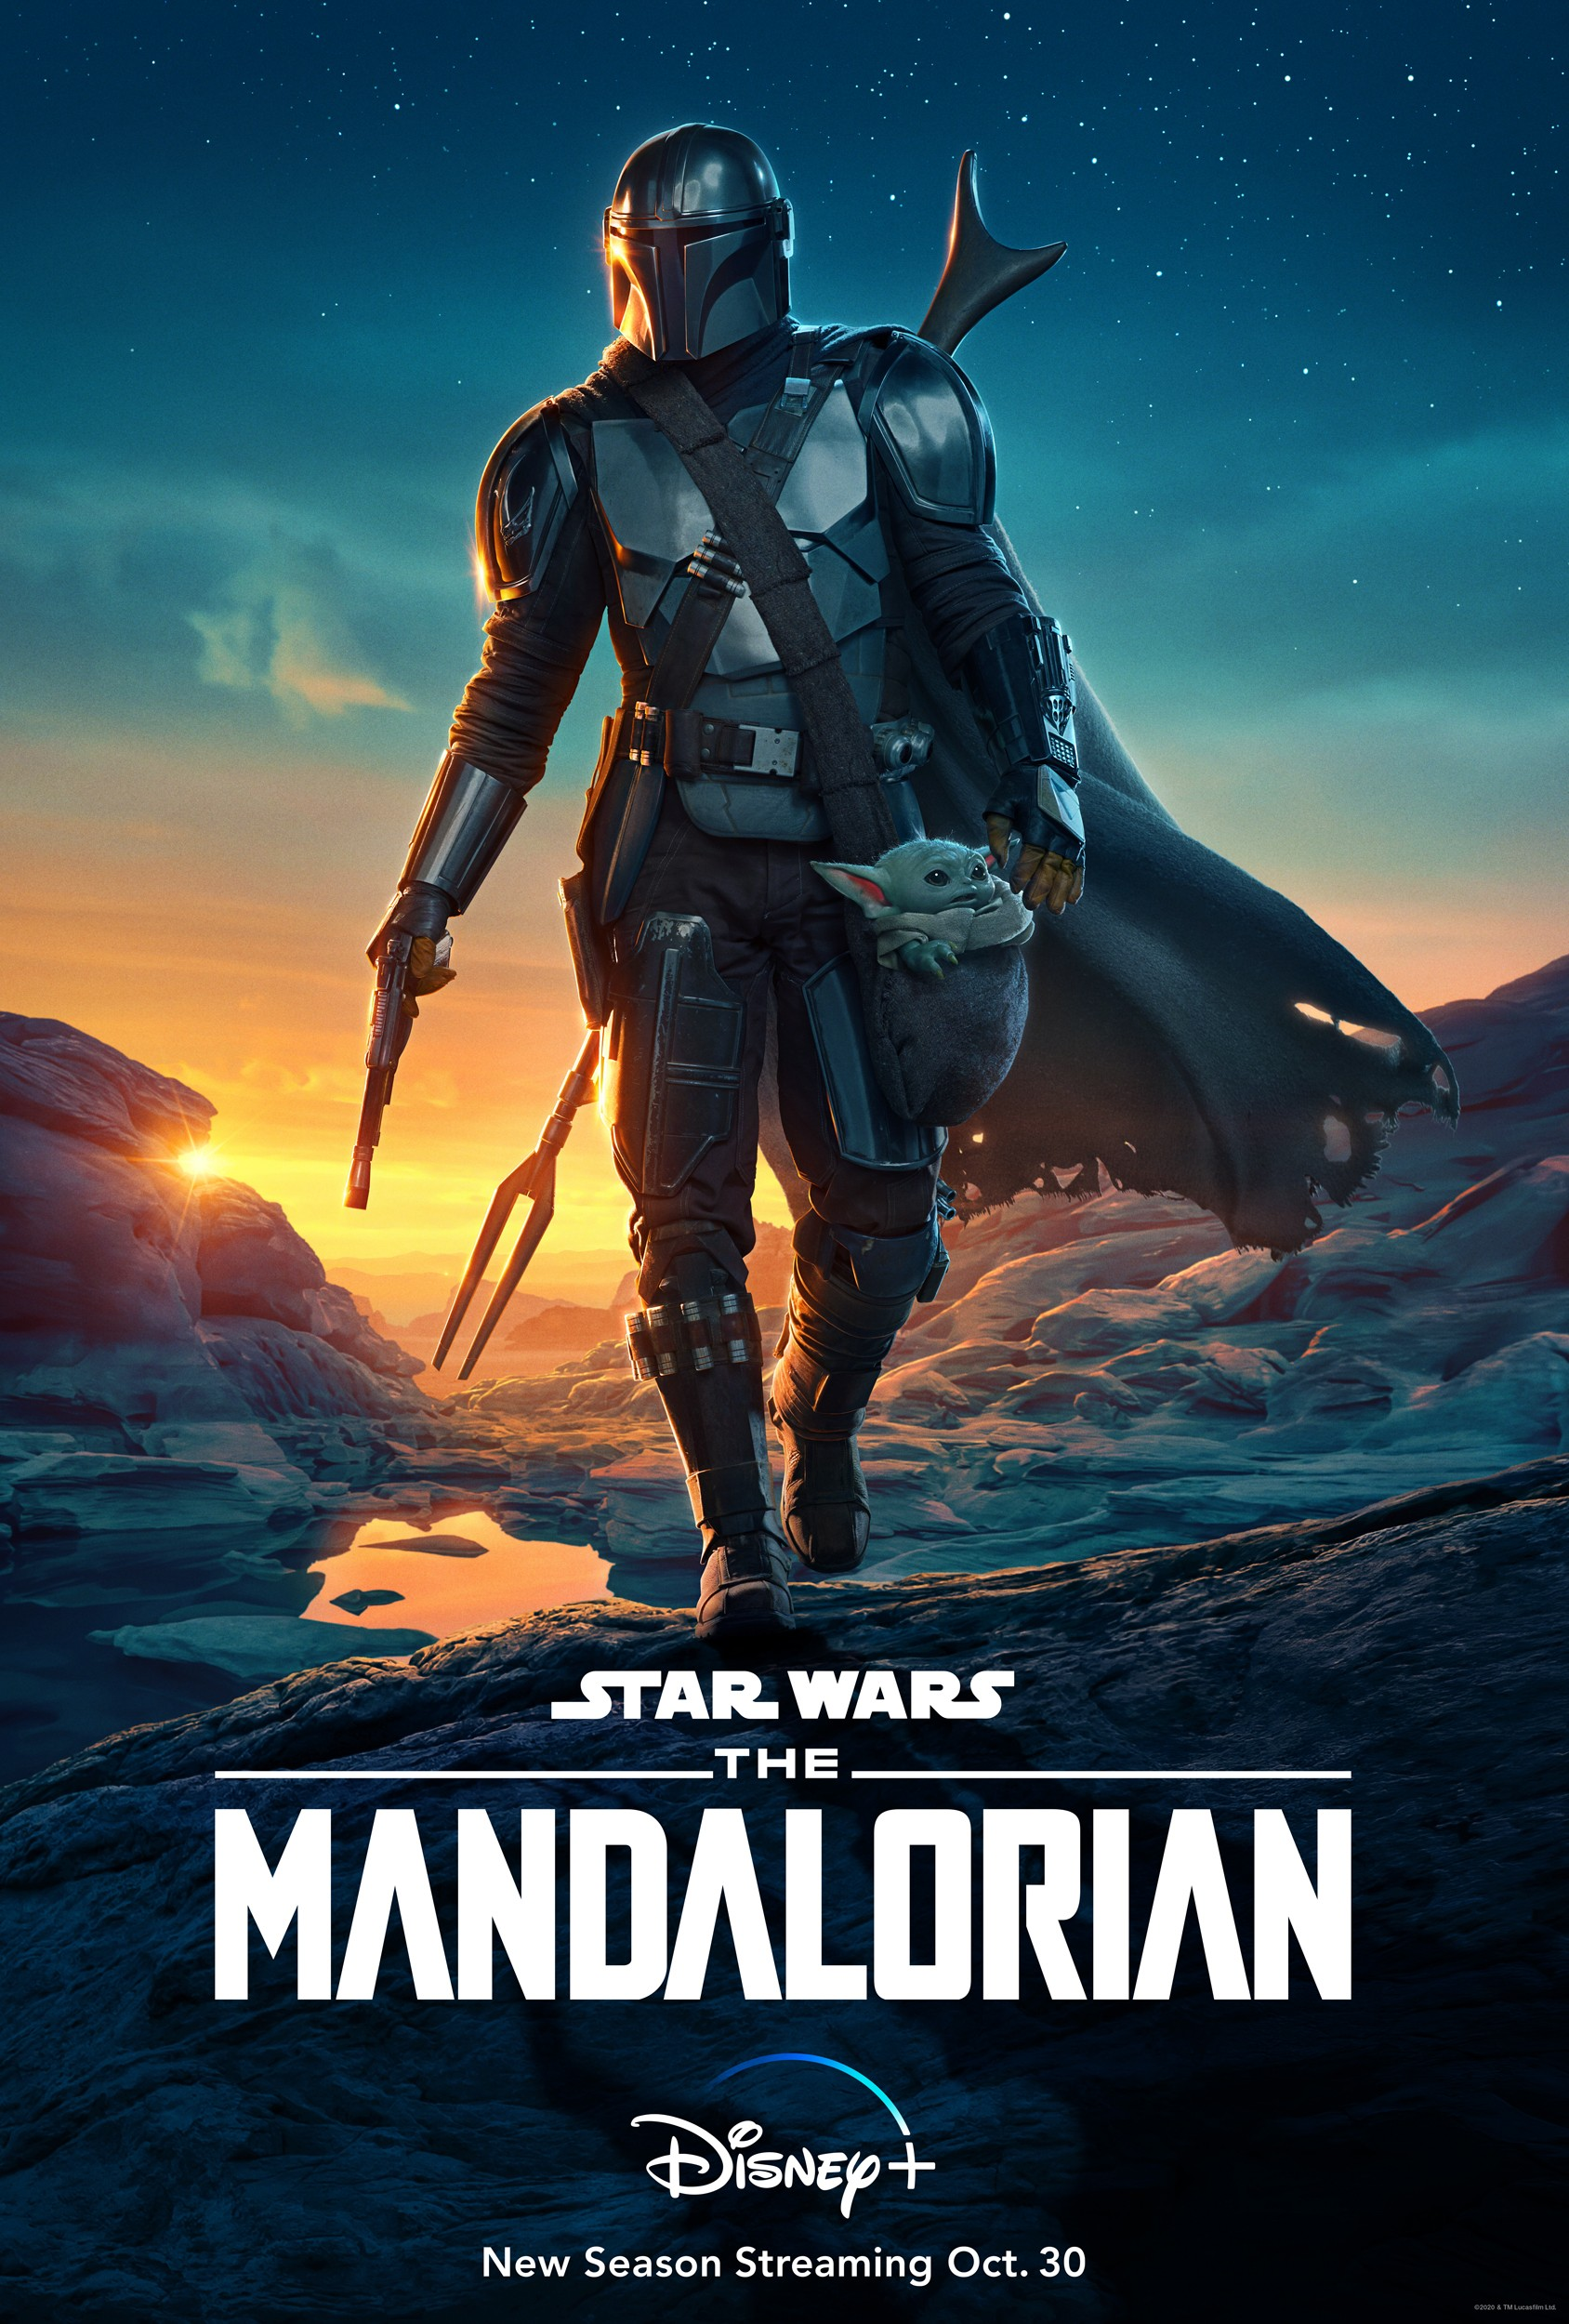 Star Wars: The Mandalorian Season 2 Episode 4 Release Time and Episode Schedule